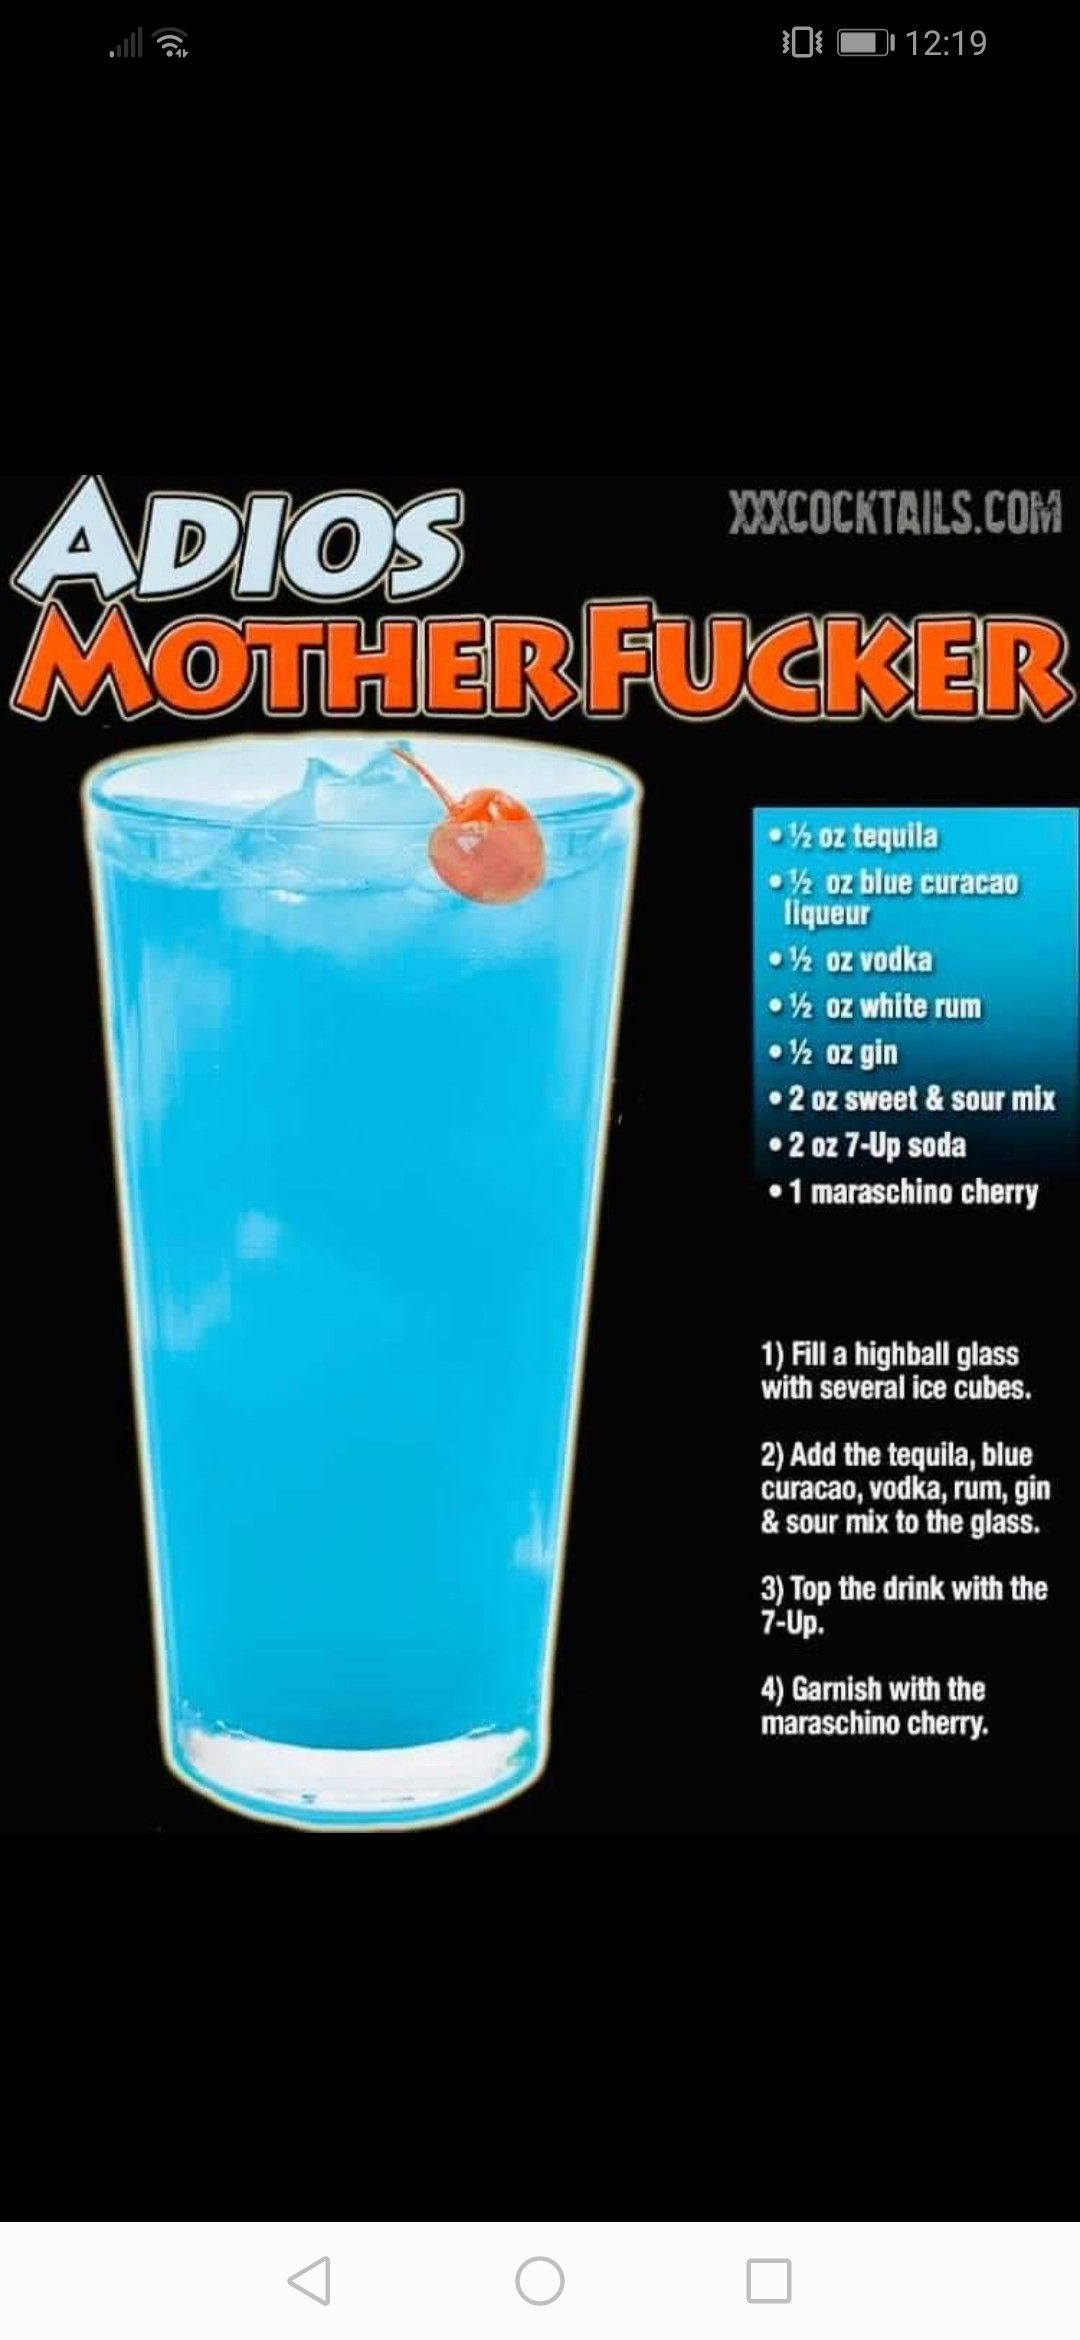 Pin By Chris On Drink Recipes In 2020 Alcohol Drink Recipes Cocktail Drinks Alcoholic Drinks Alcohol Recipes